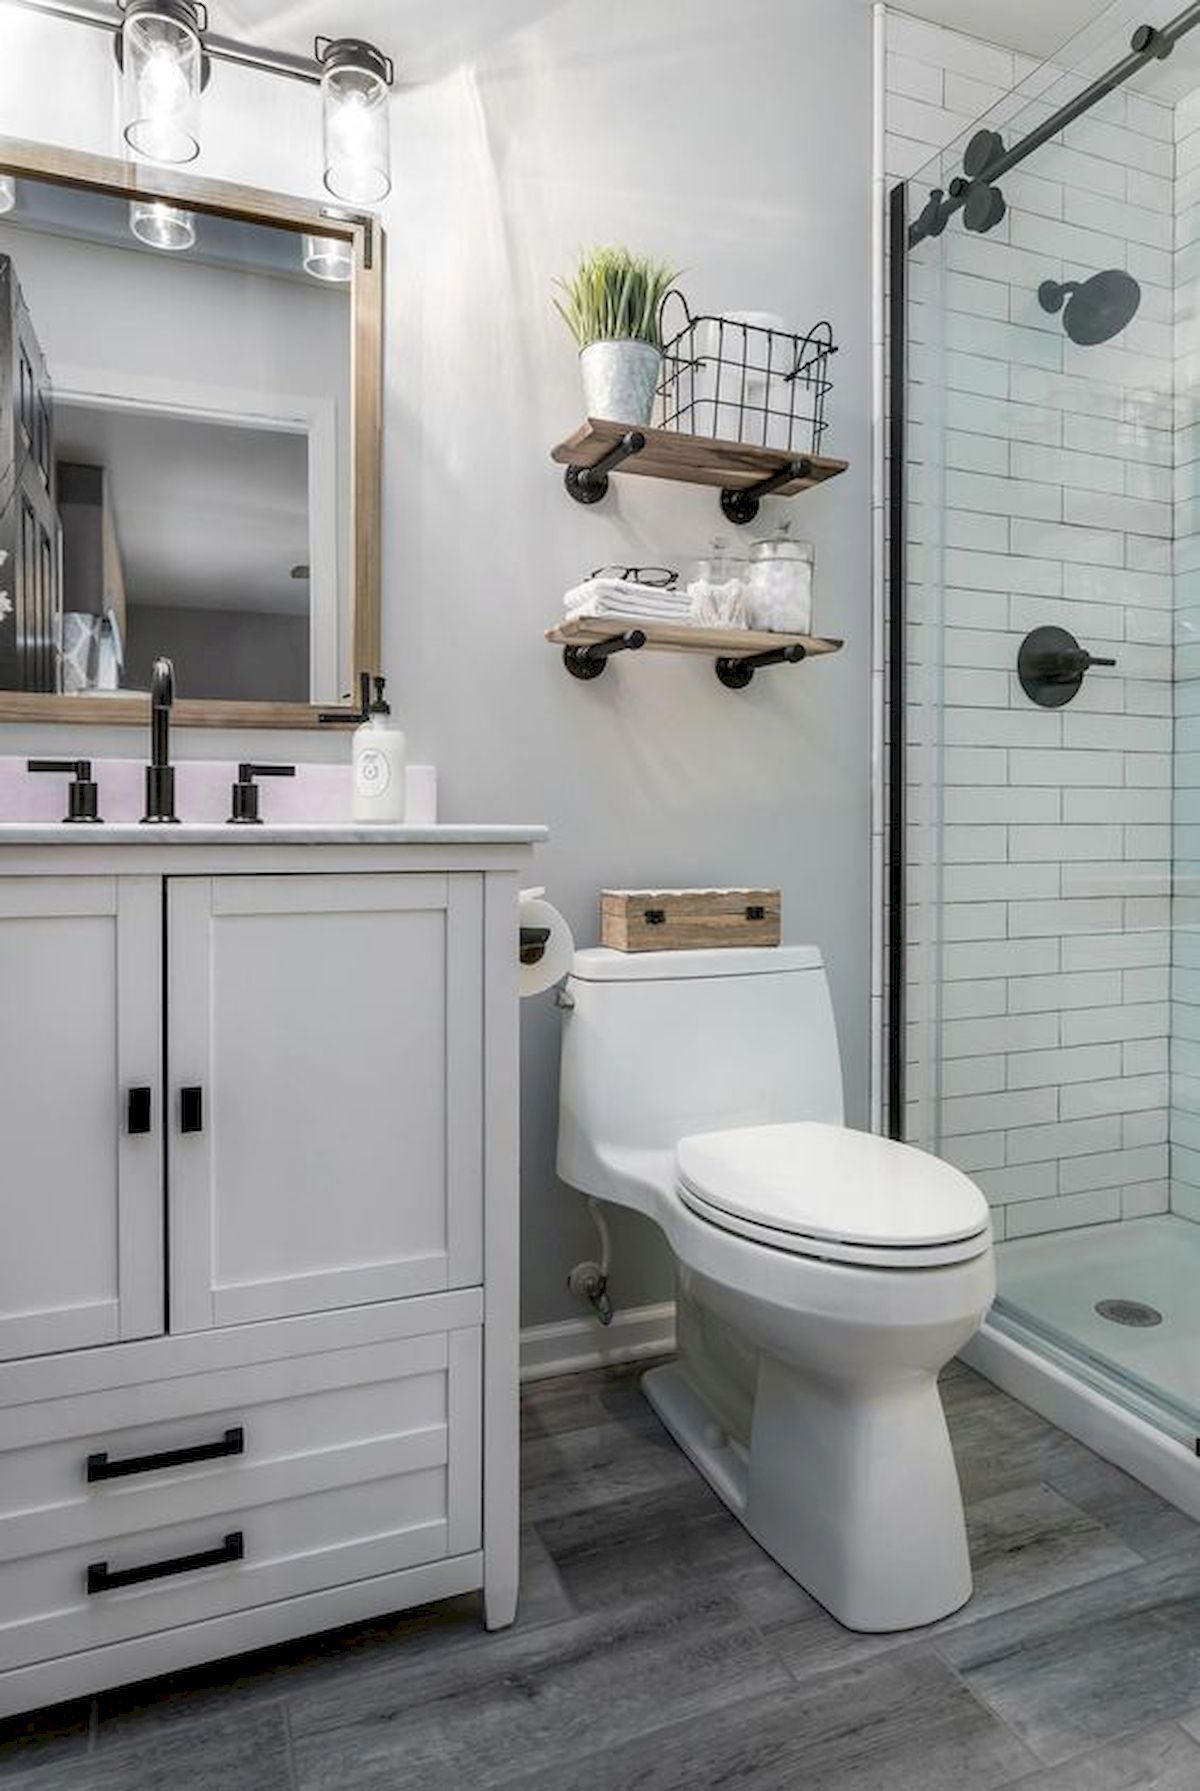 30 Best Gray And White Bathroom Ideas For 2019 Recomended Guest Bathroom Remodel Bathroom Design Small Small Master Bathroom